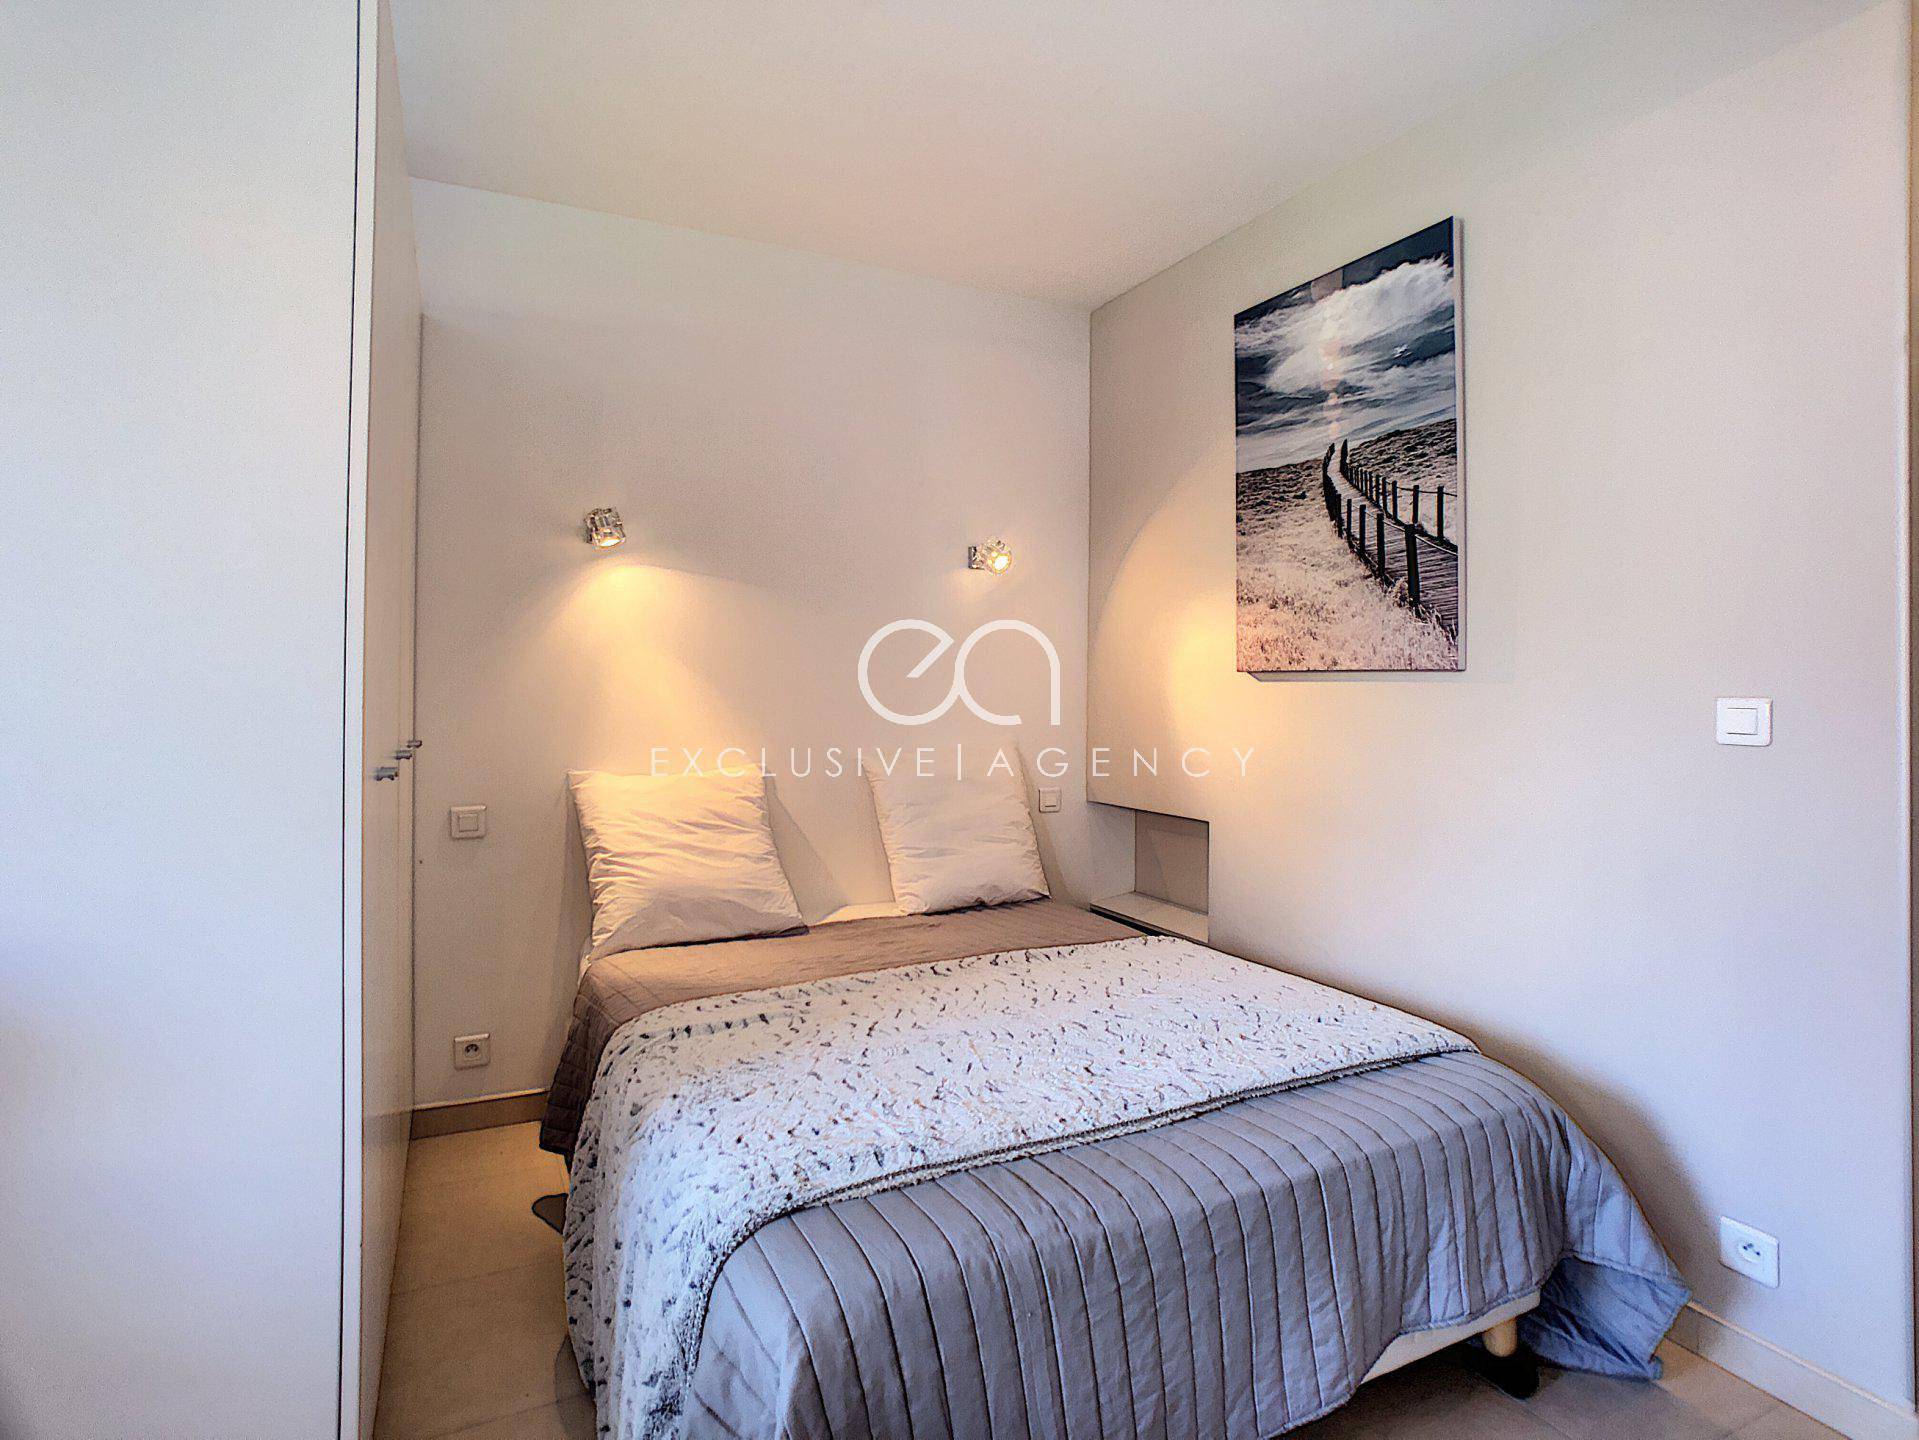 SOLE AGENT For sale in Cannes Center Croisette 32sqm studio with terrace.